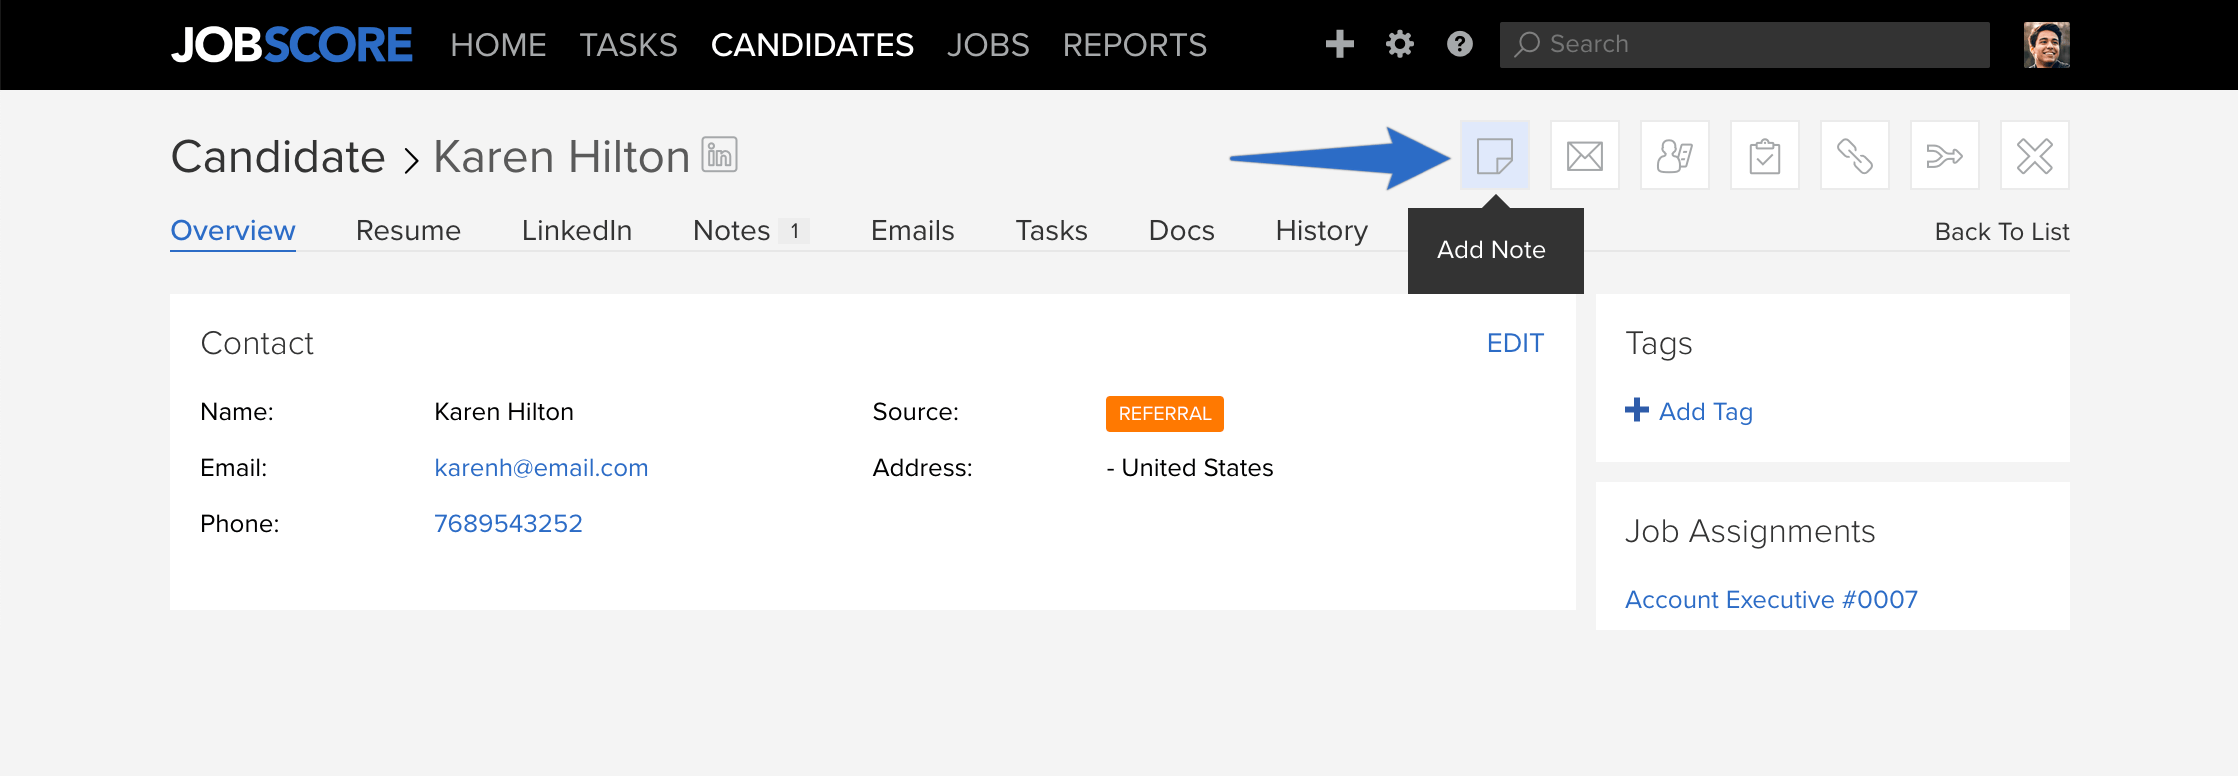 add-note-to-candidate